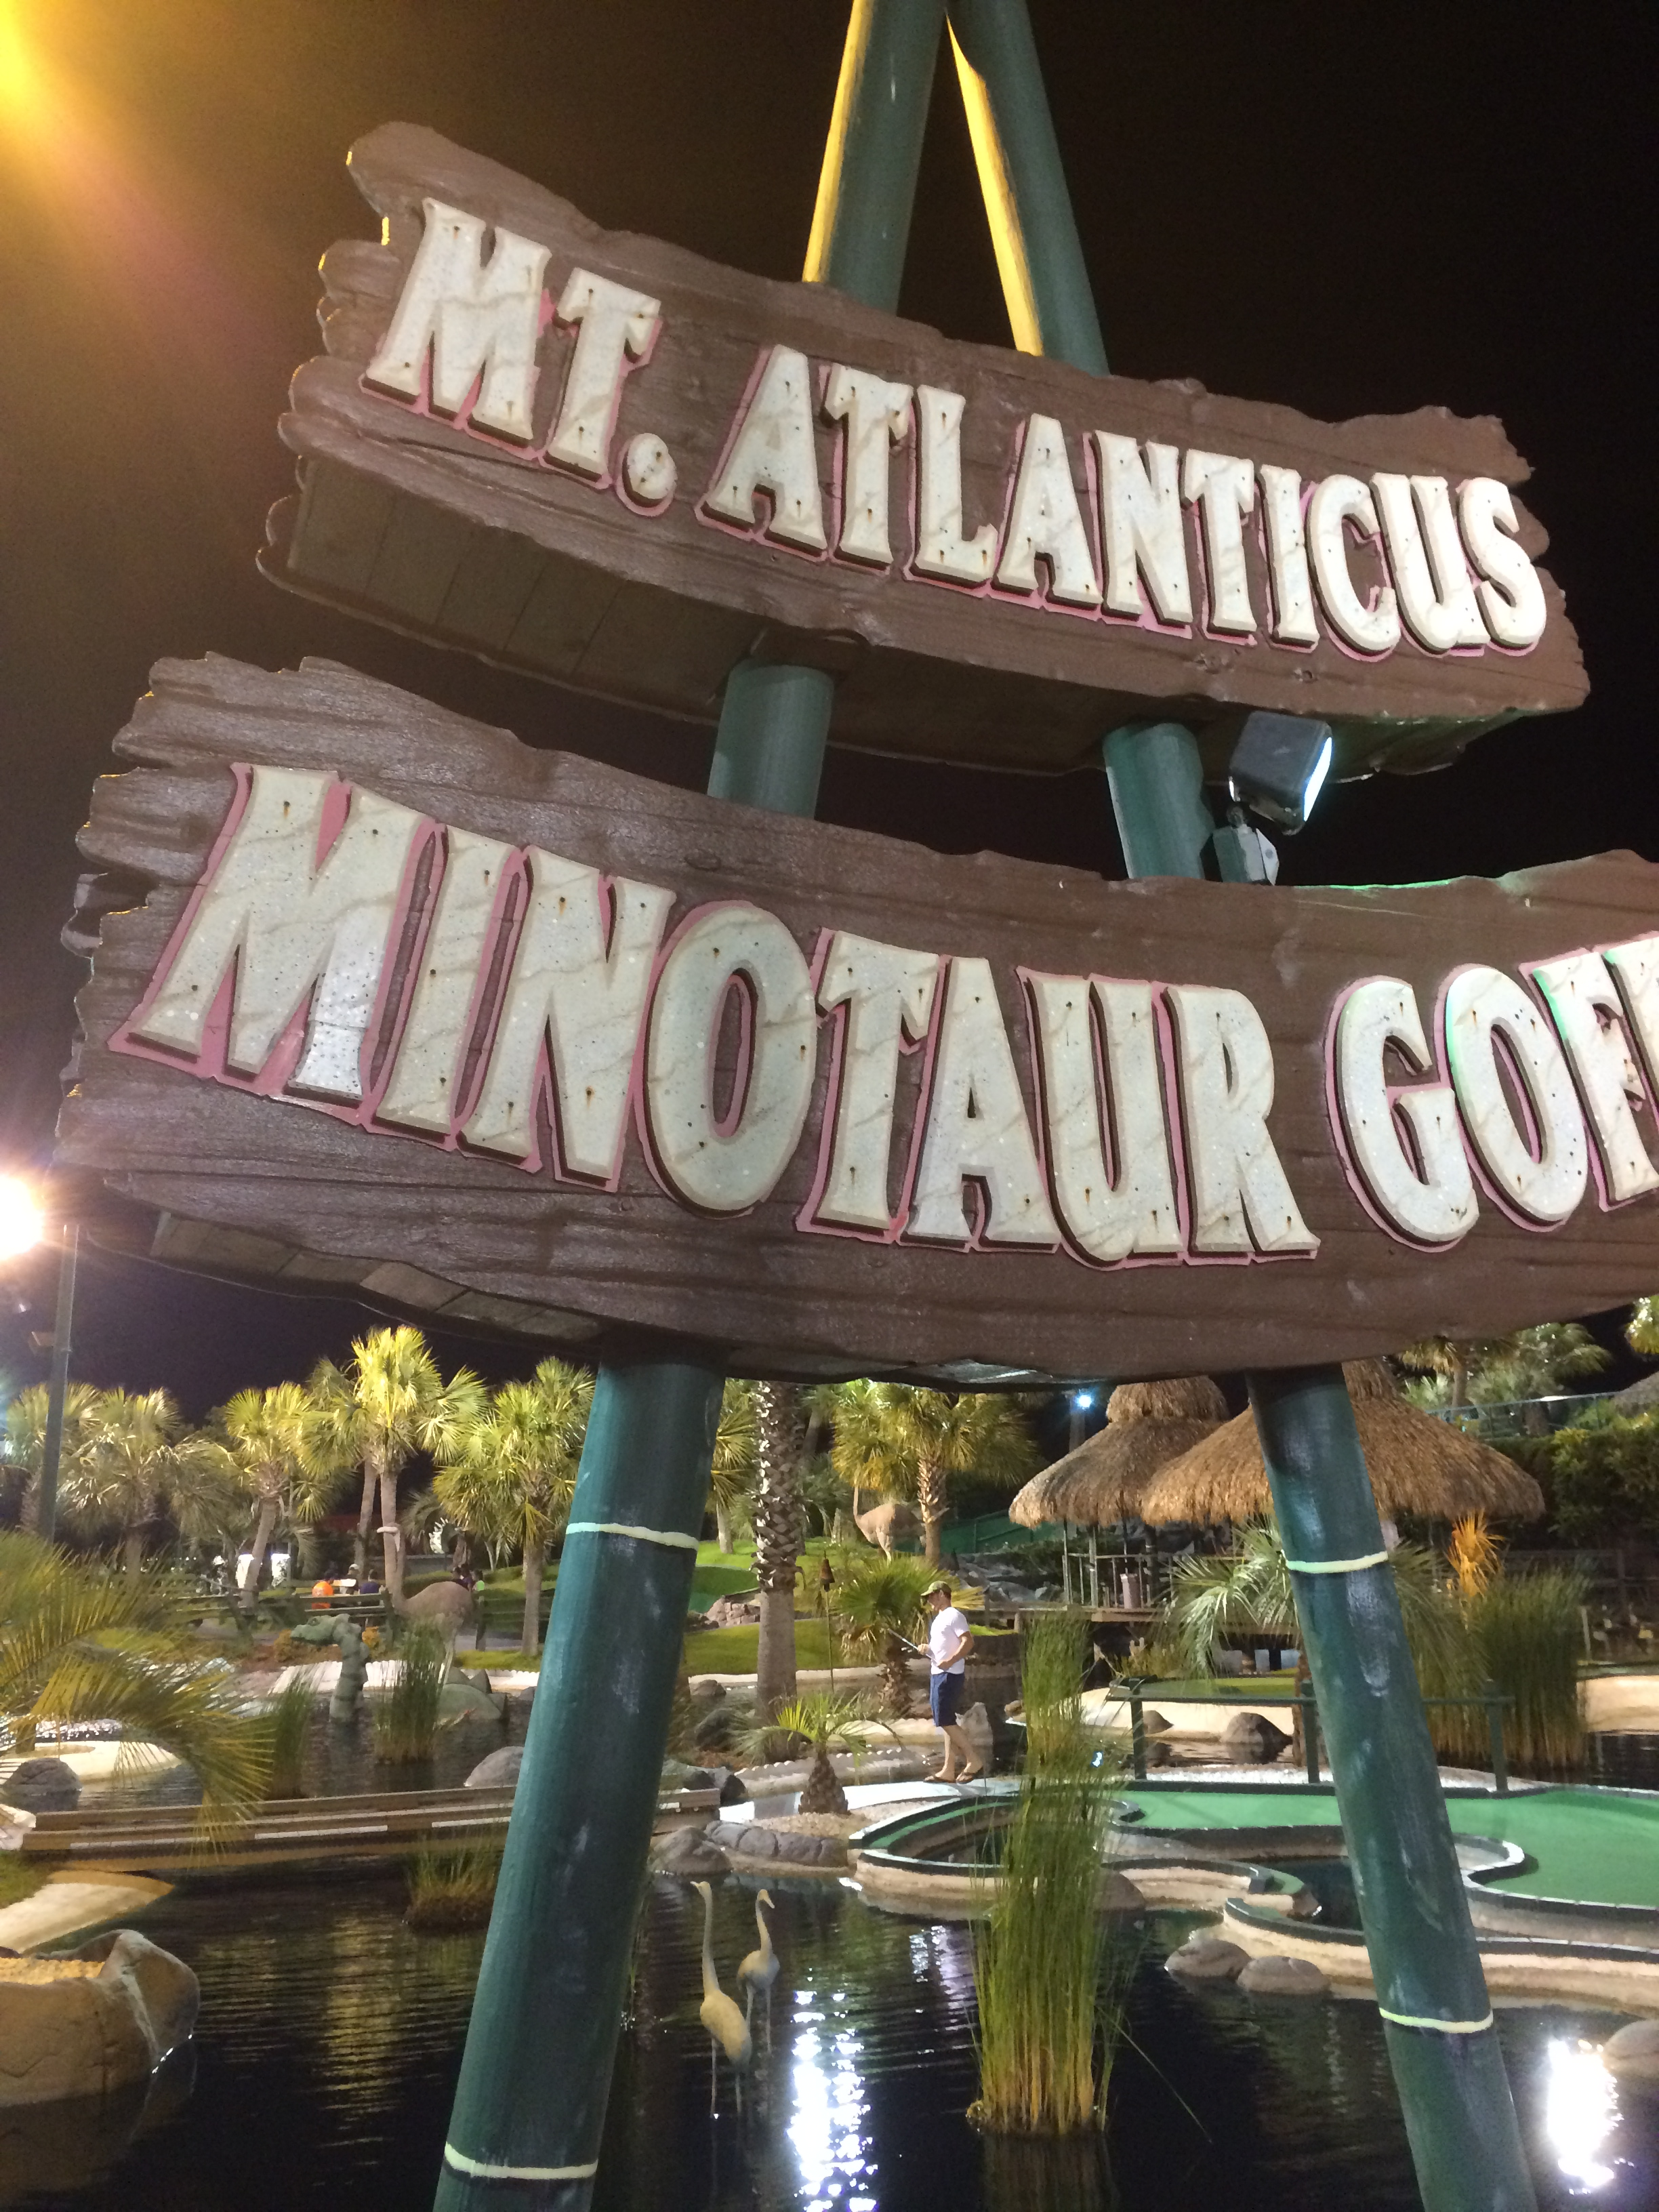 Last night my friend Sidney and I visited the Mt. Atlanticus Minotaur Goff course.